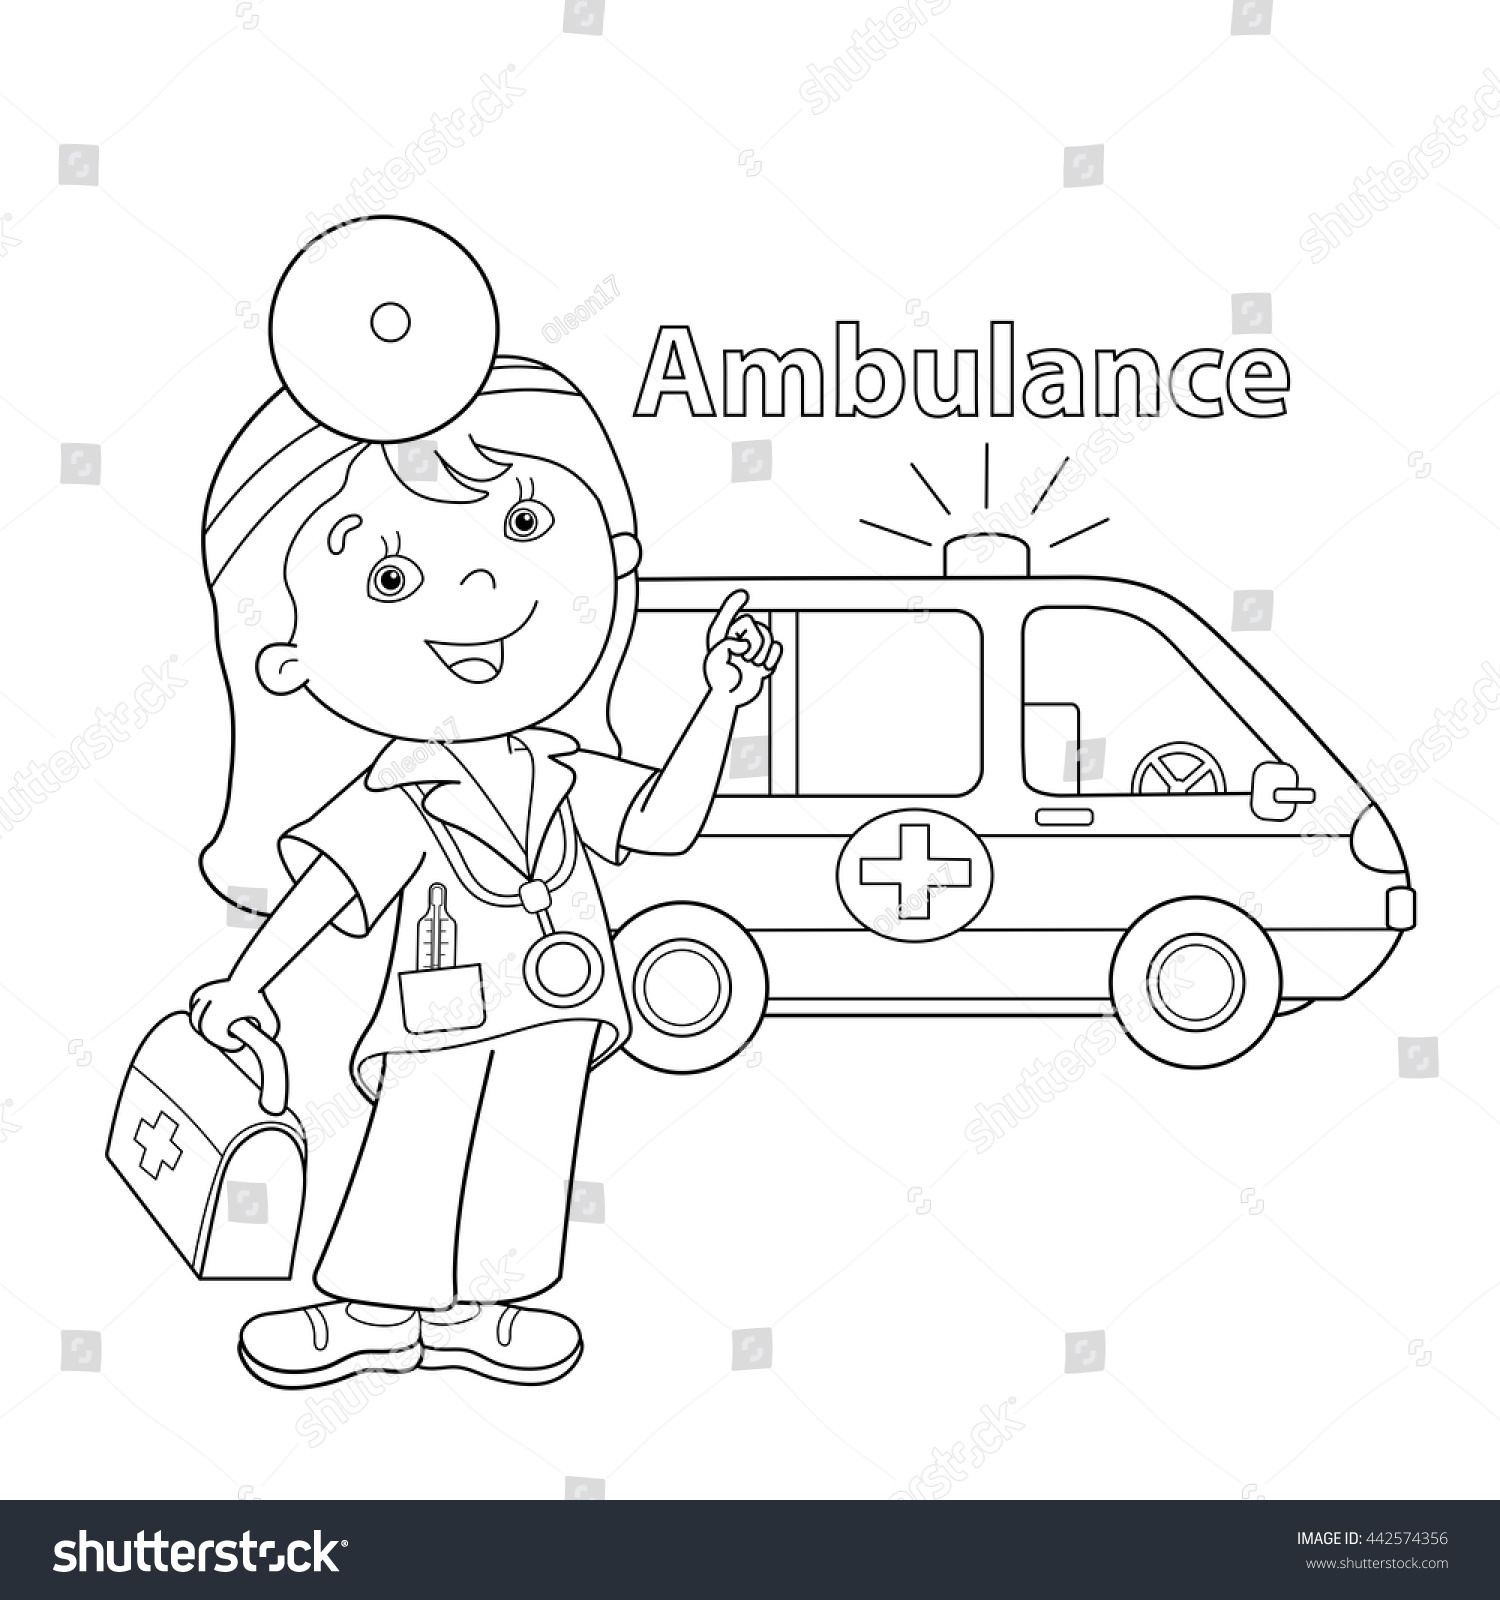 coloring page outline of cartoon doctor with first aid kit ambulance car profession